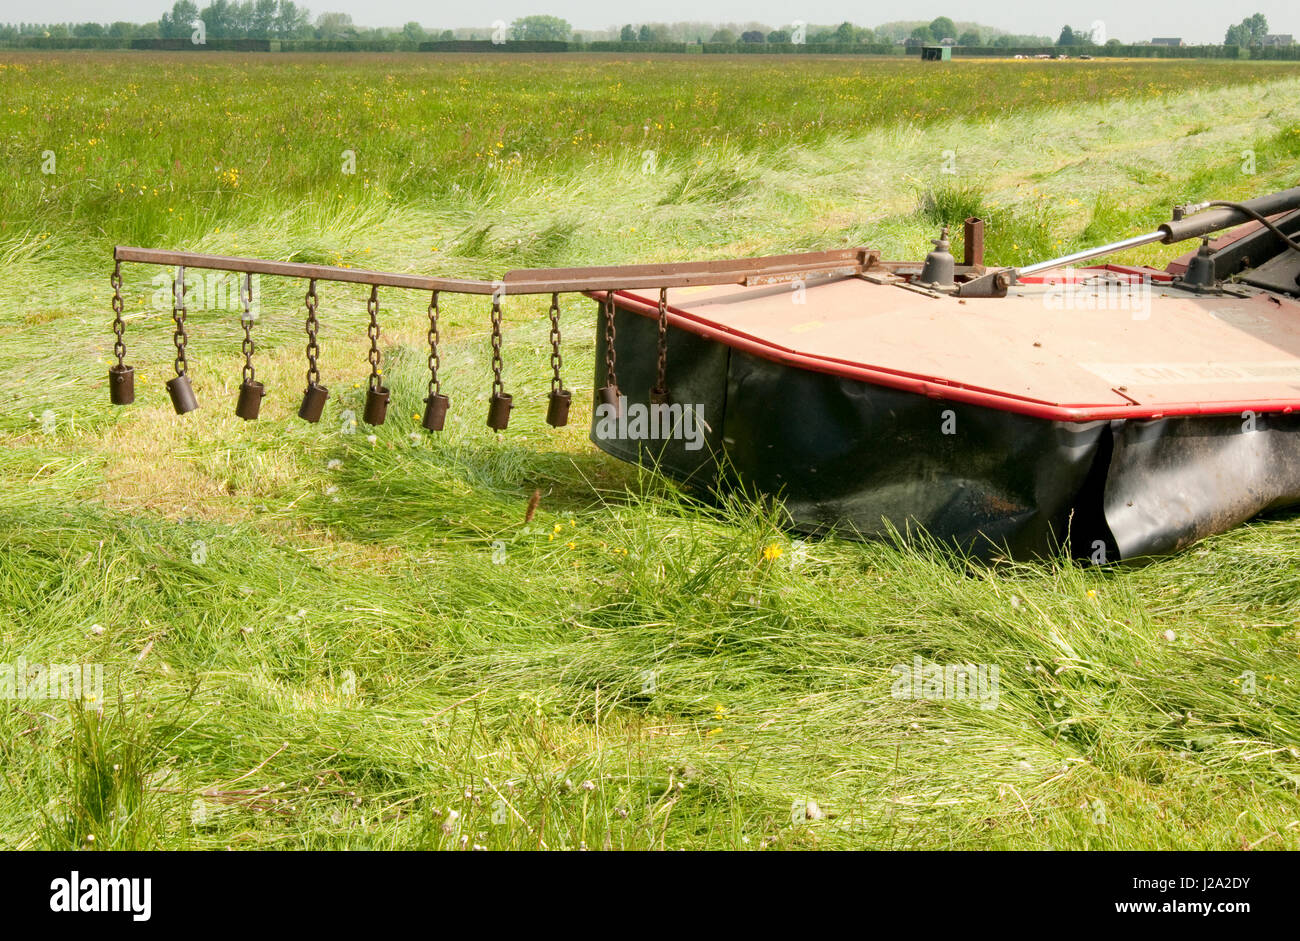 An extension to a tractor to save animals when mowing the grass Stock Photo